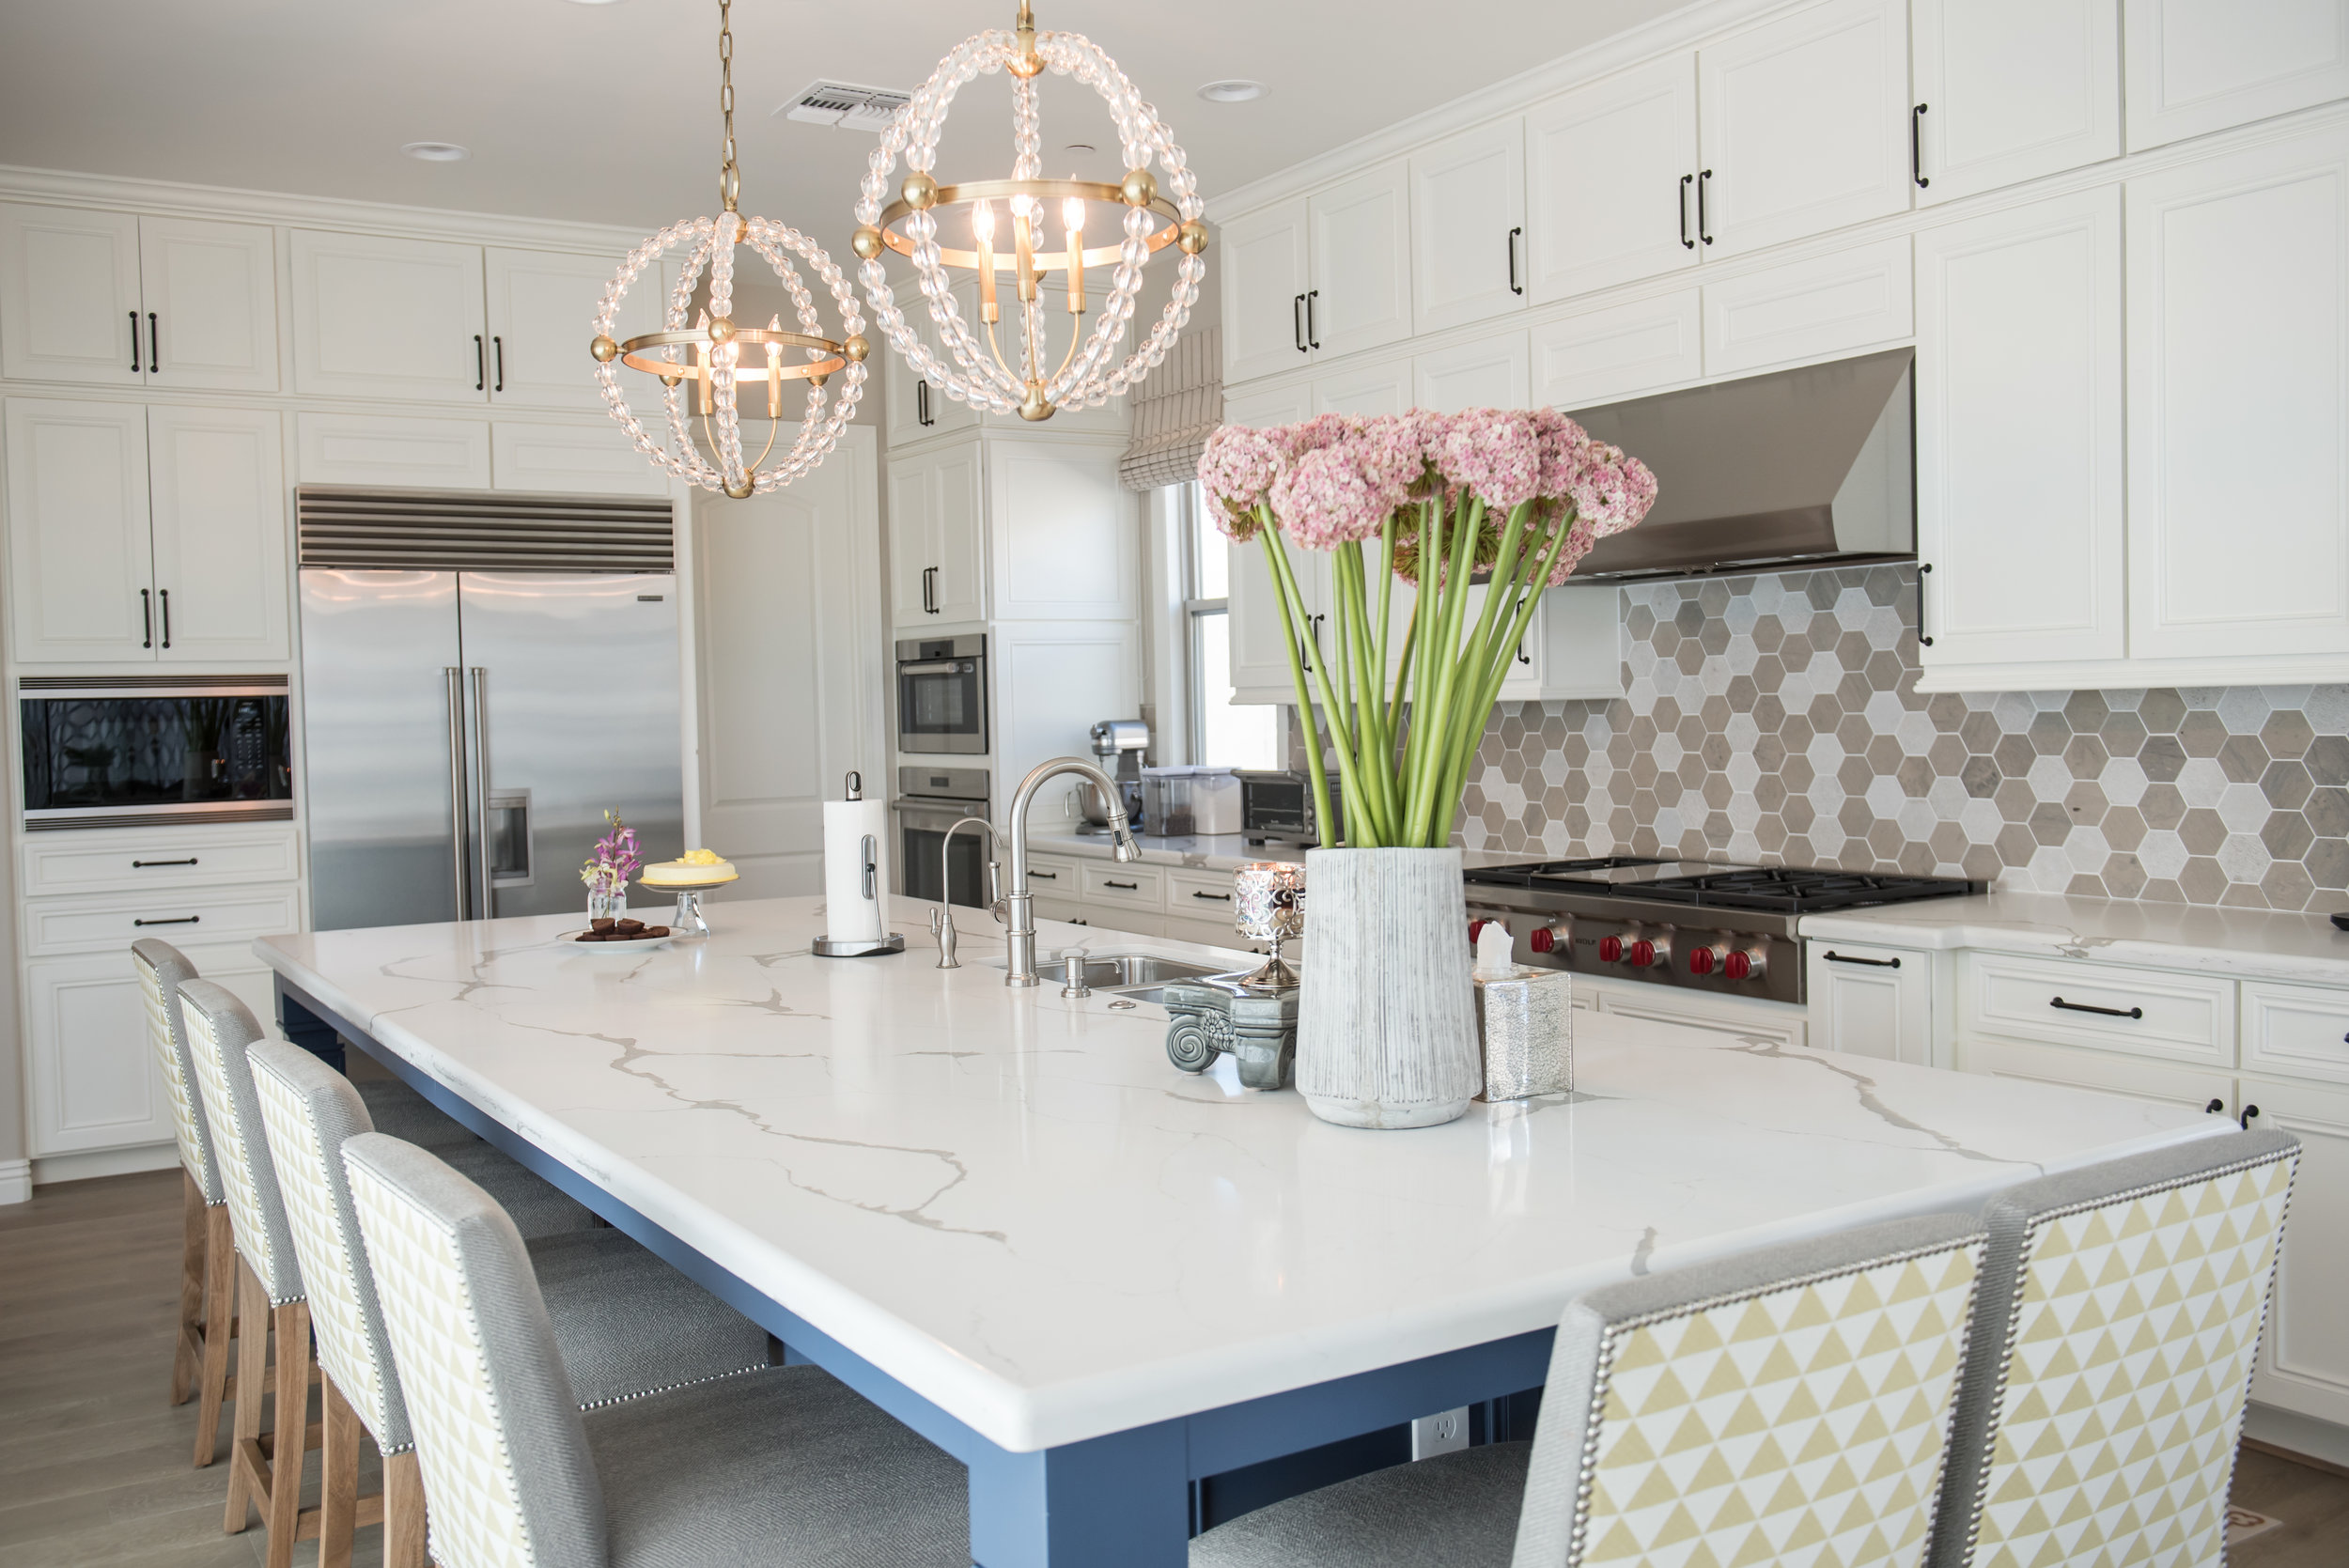 8 Chandelier+Brass+Kitchen+Accessories+Transitional+Scottsdale.jpg